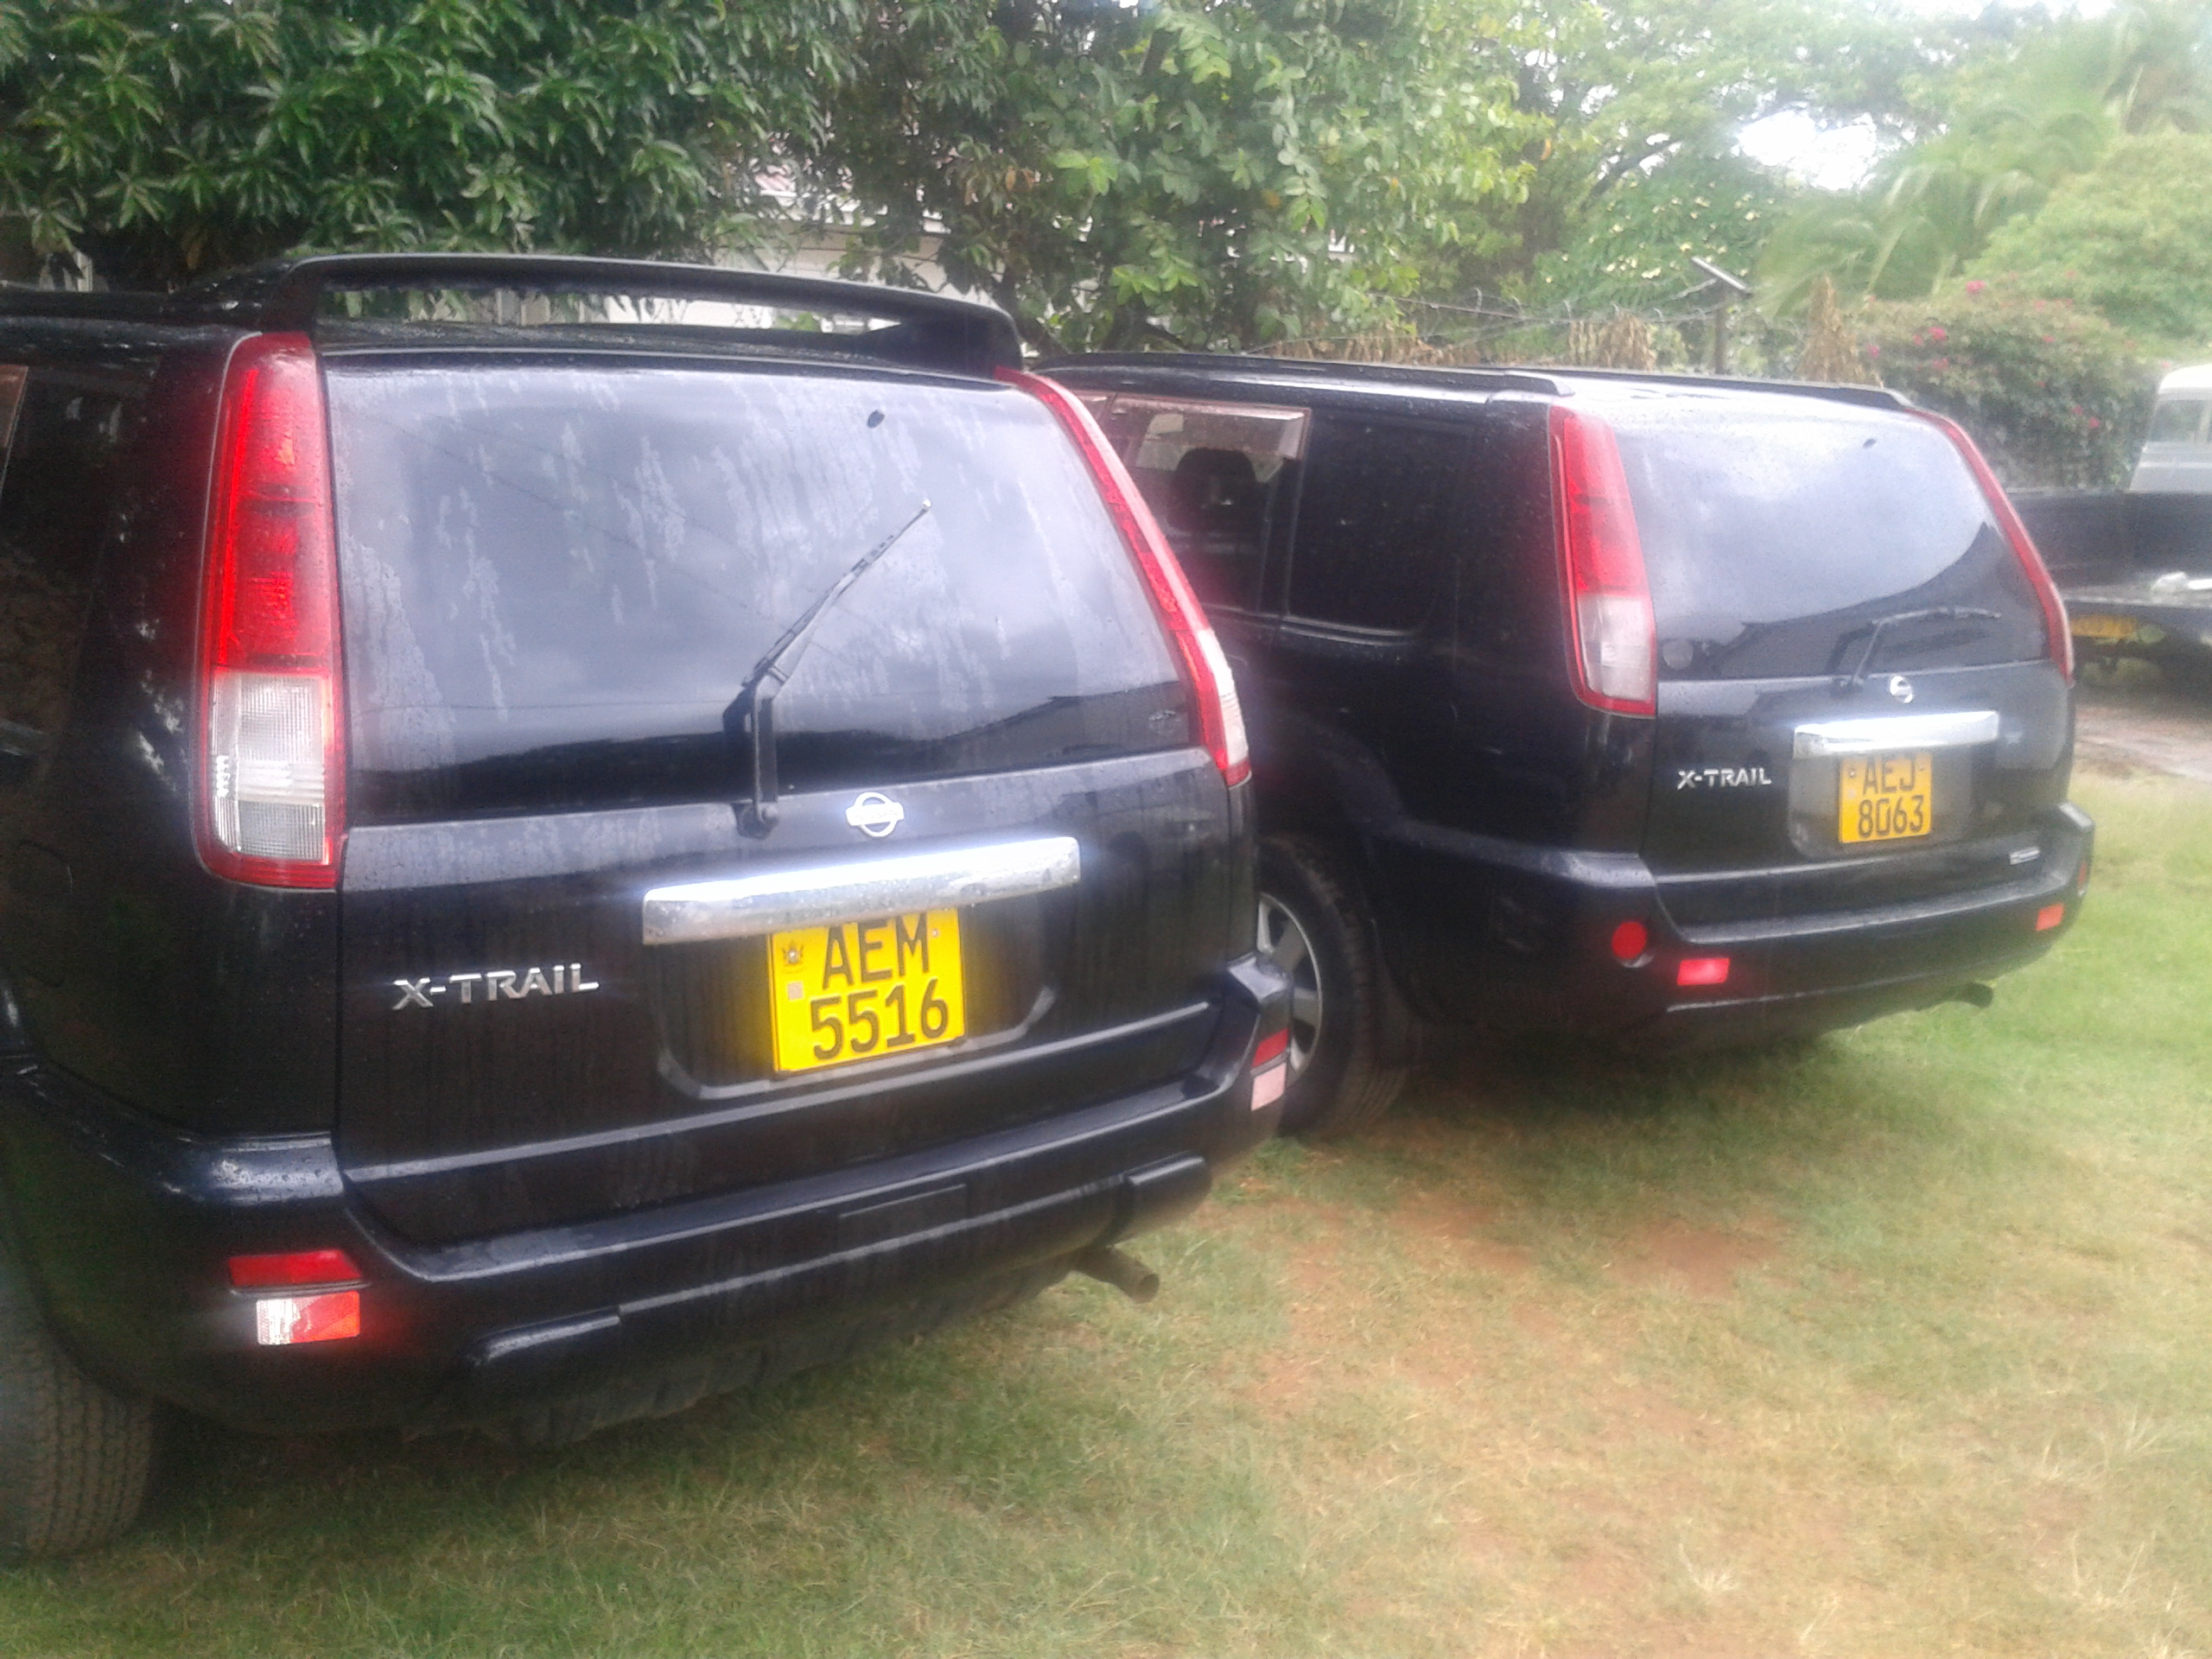 Cars for Sale Classifieds Zimbabwe Fresh Eazy Rent A Car In Zimbabwe Connect8 Zimbabwe